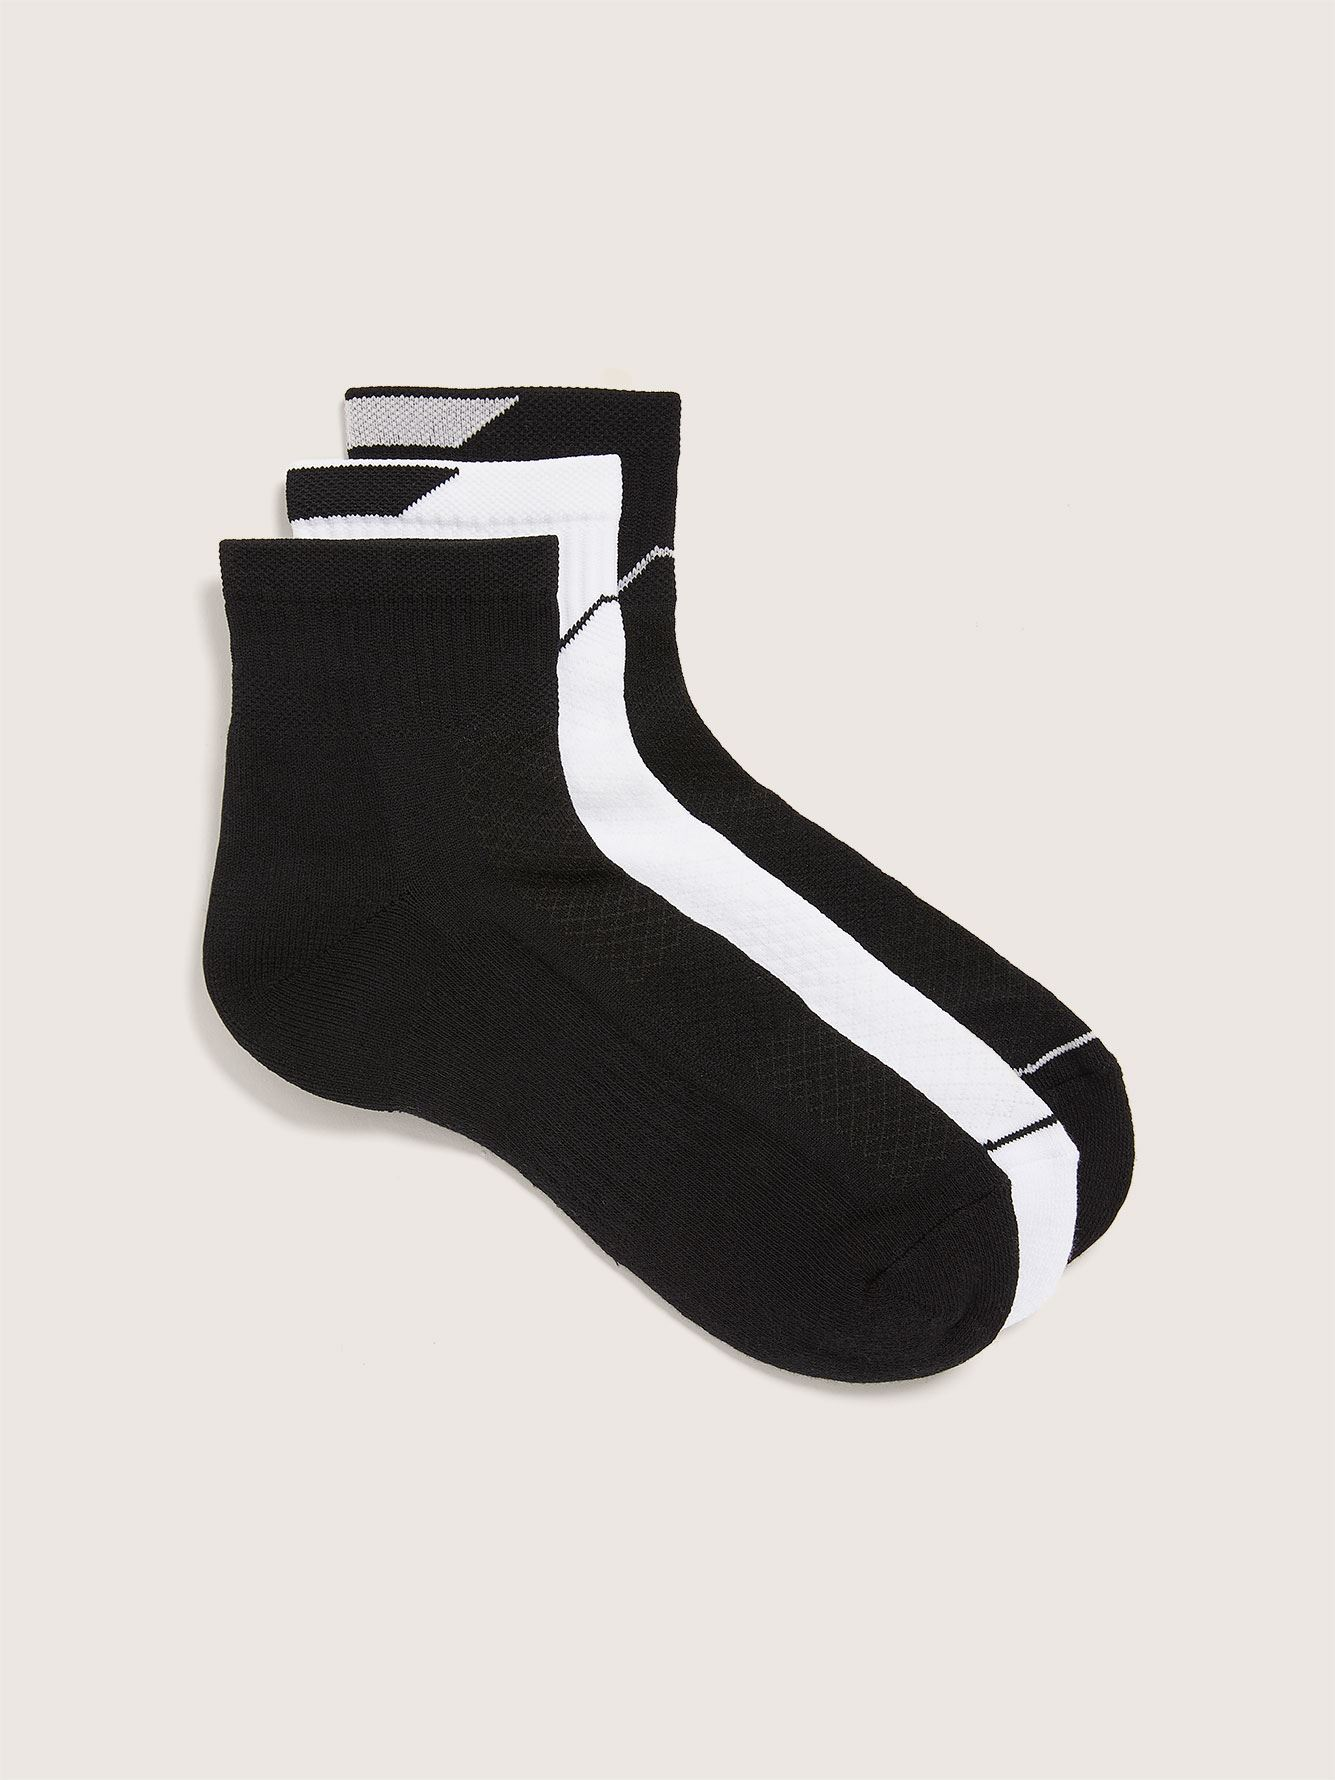 Wide Sports Ankle Socks, Pack of 3 - Addition Elle